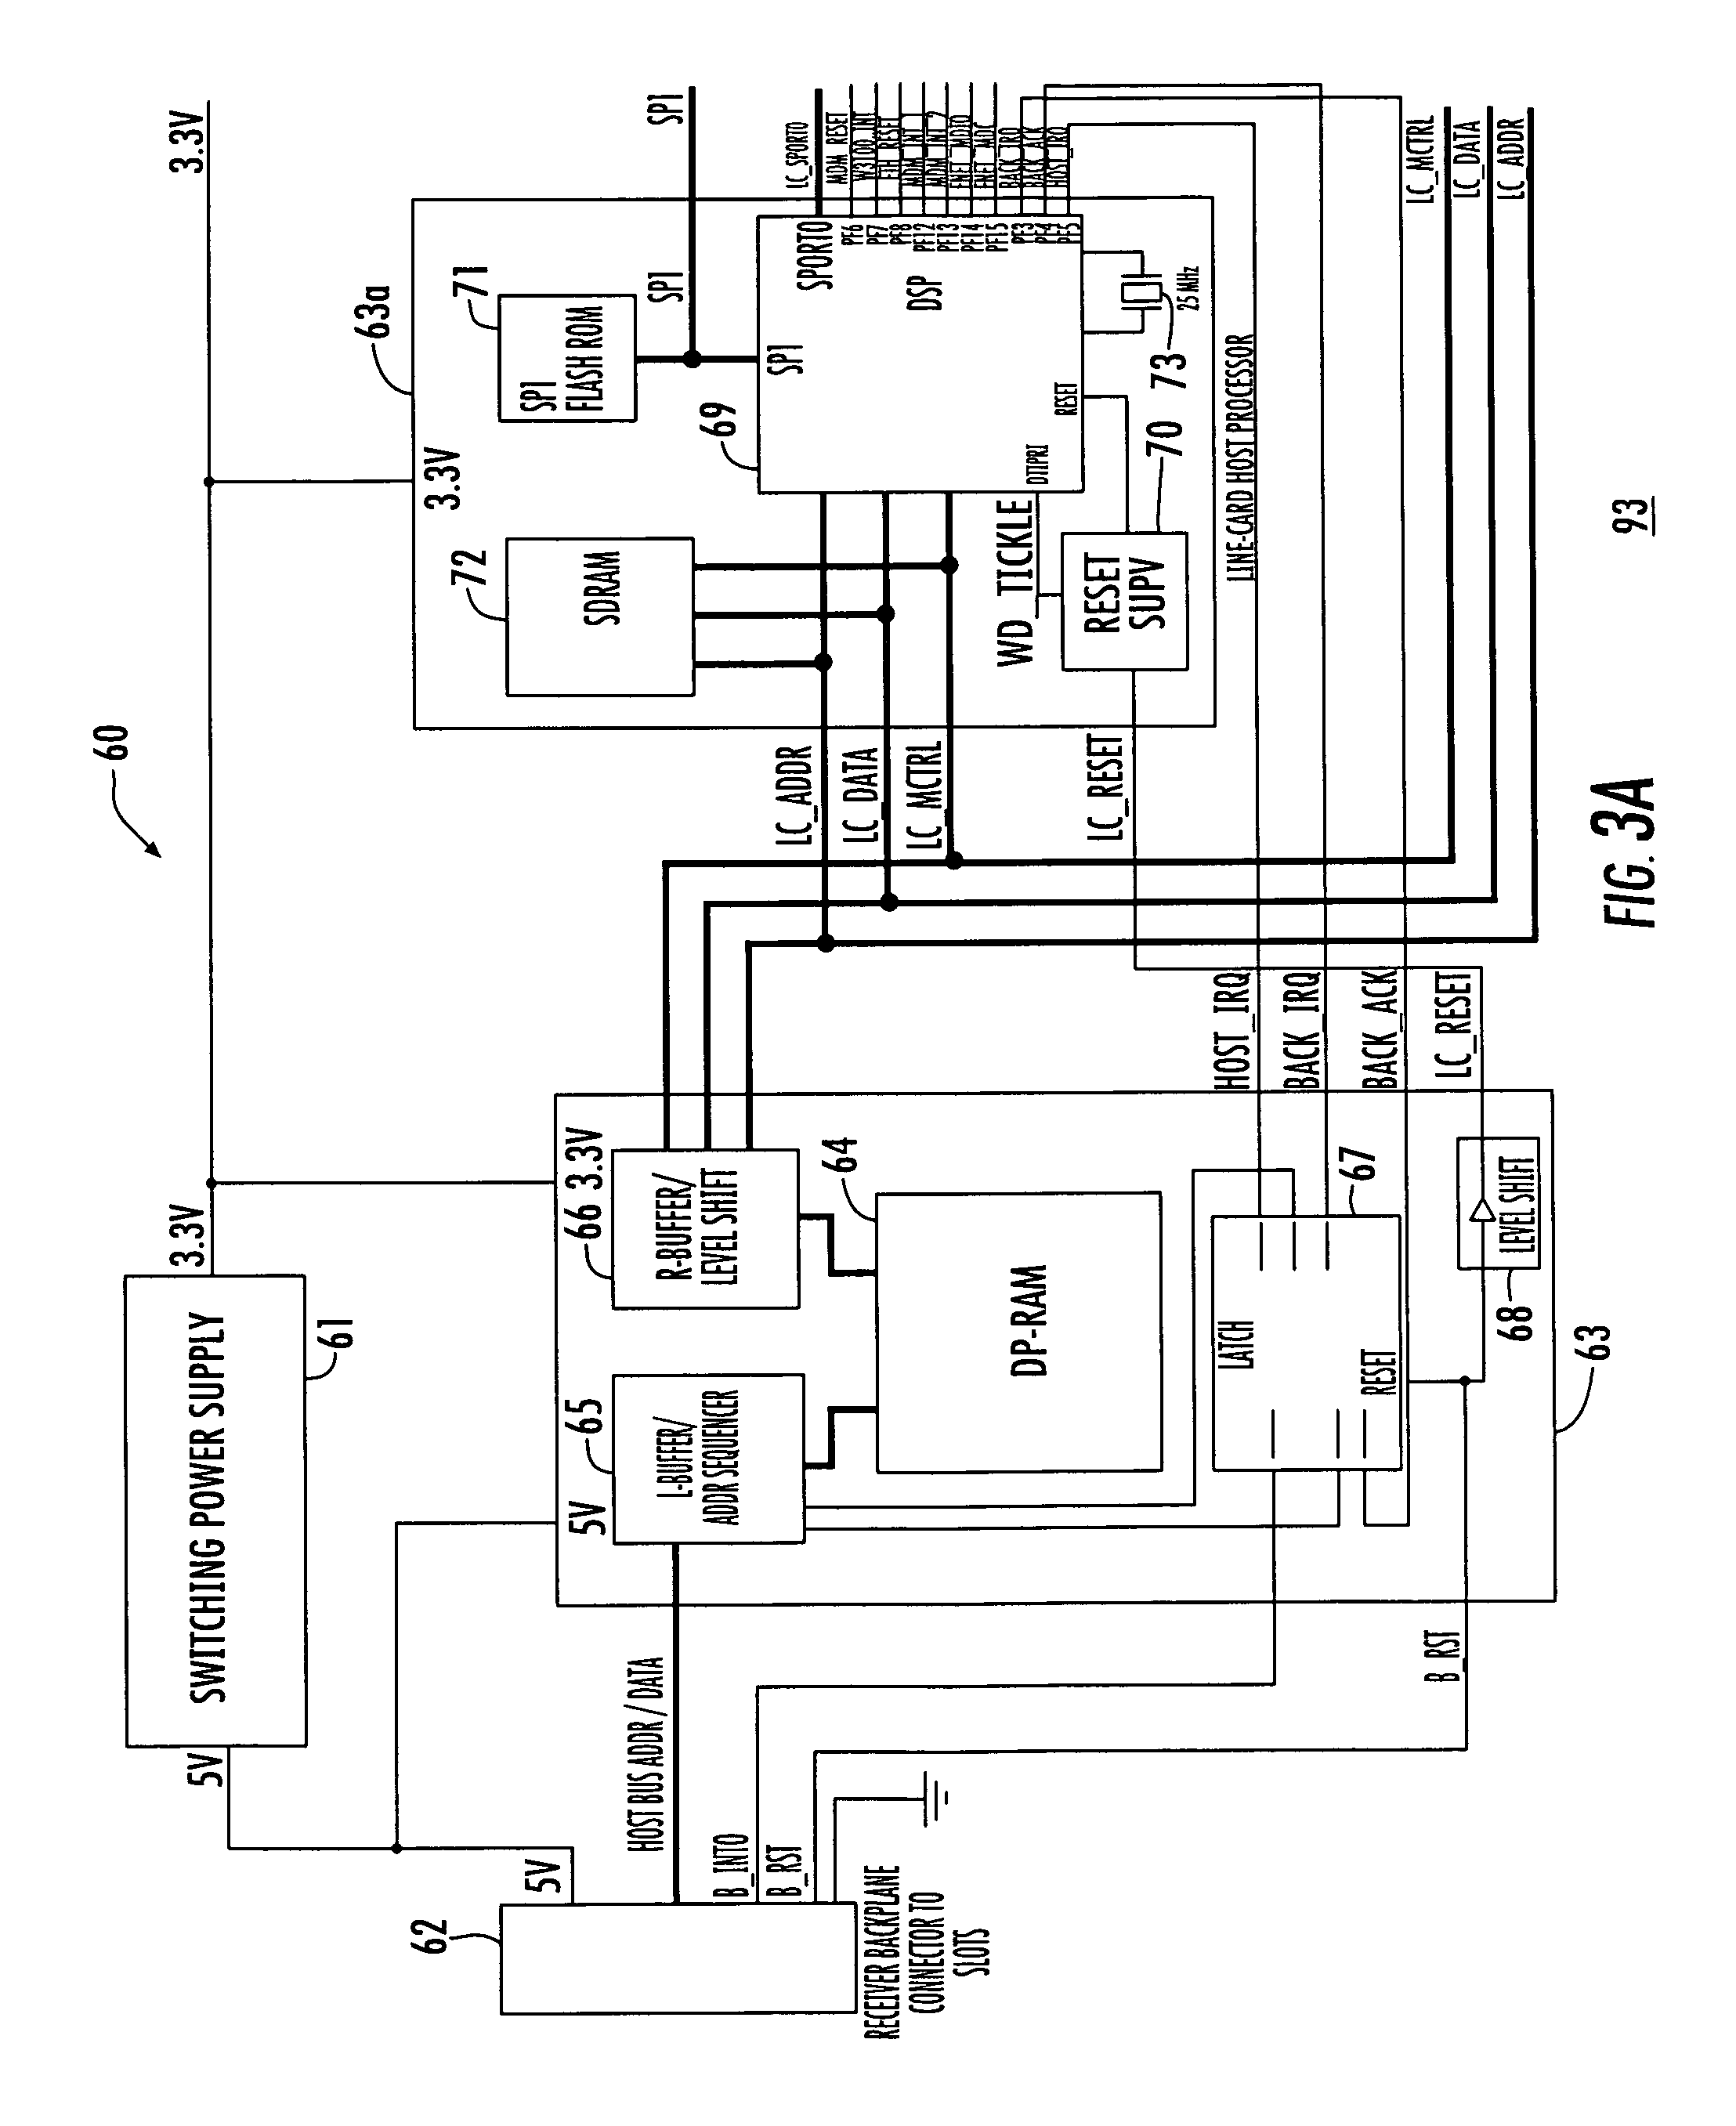 US08531286 20130910 D00004 patent us8531286 system and method for monitoring security at a tyco smoke detector wiring diagram at gsmx.co